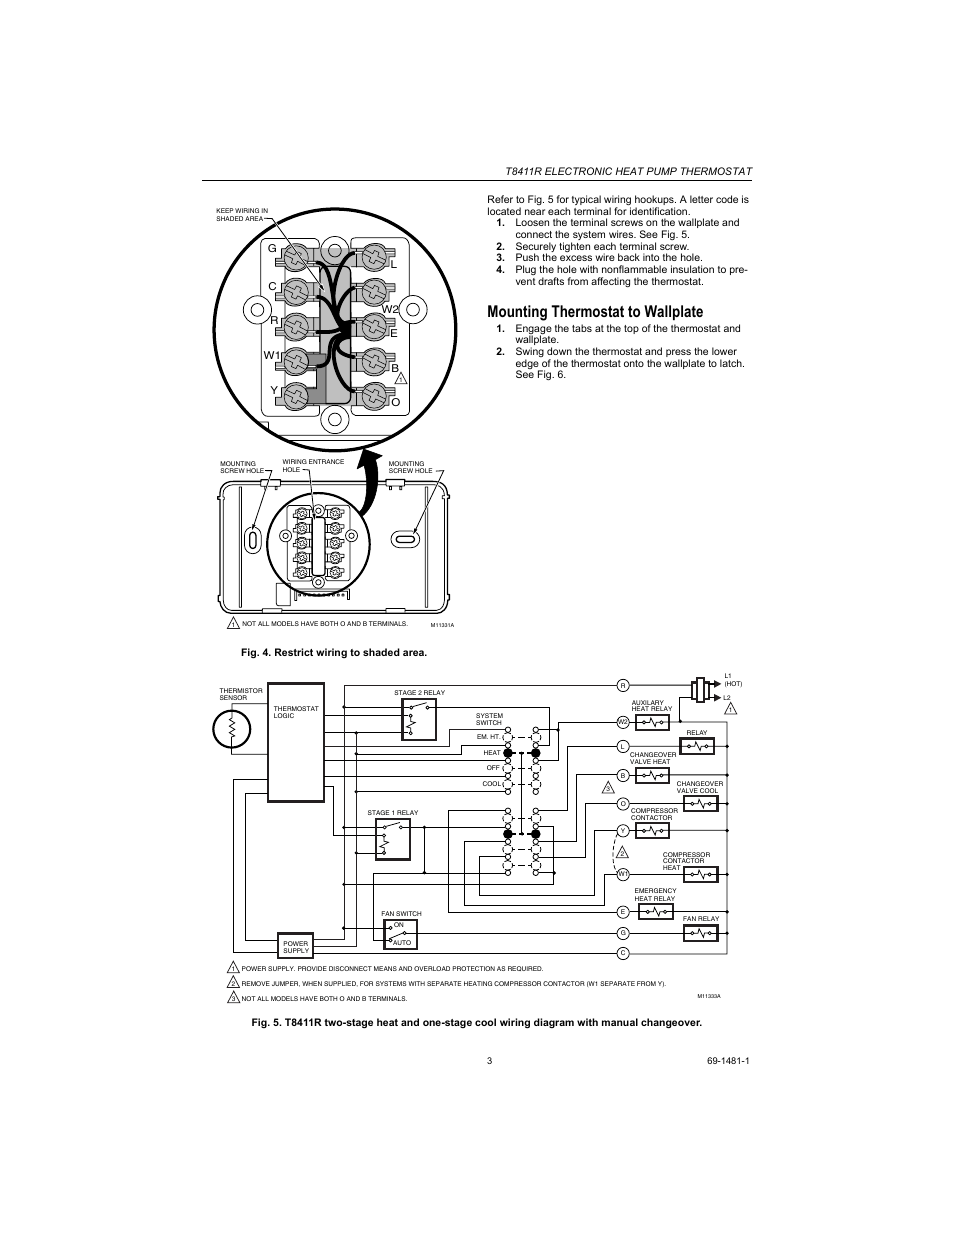 Honeywell Rth221b Wiring Diagram additionally Honeywell Non Programmable Thermostat Manual besides Thermostat Wiring Diagram On Incubator Get as well Boiler Wiring Guide together with Honeywell Rth2300 Rth221 Wiring Diagram. on honeywell thermostat rth111